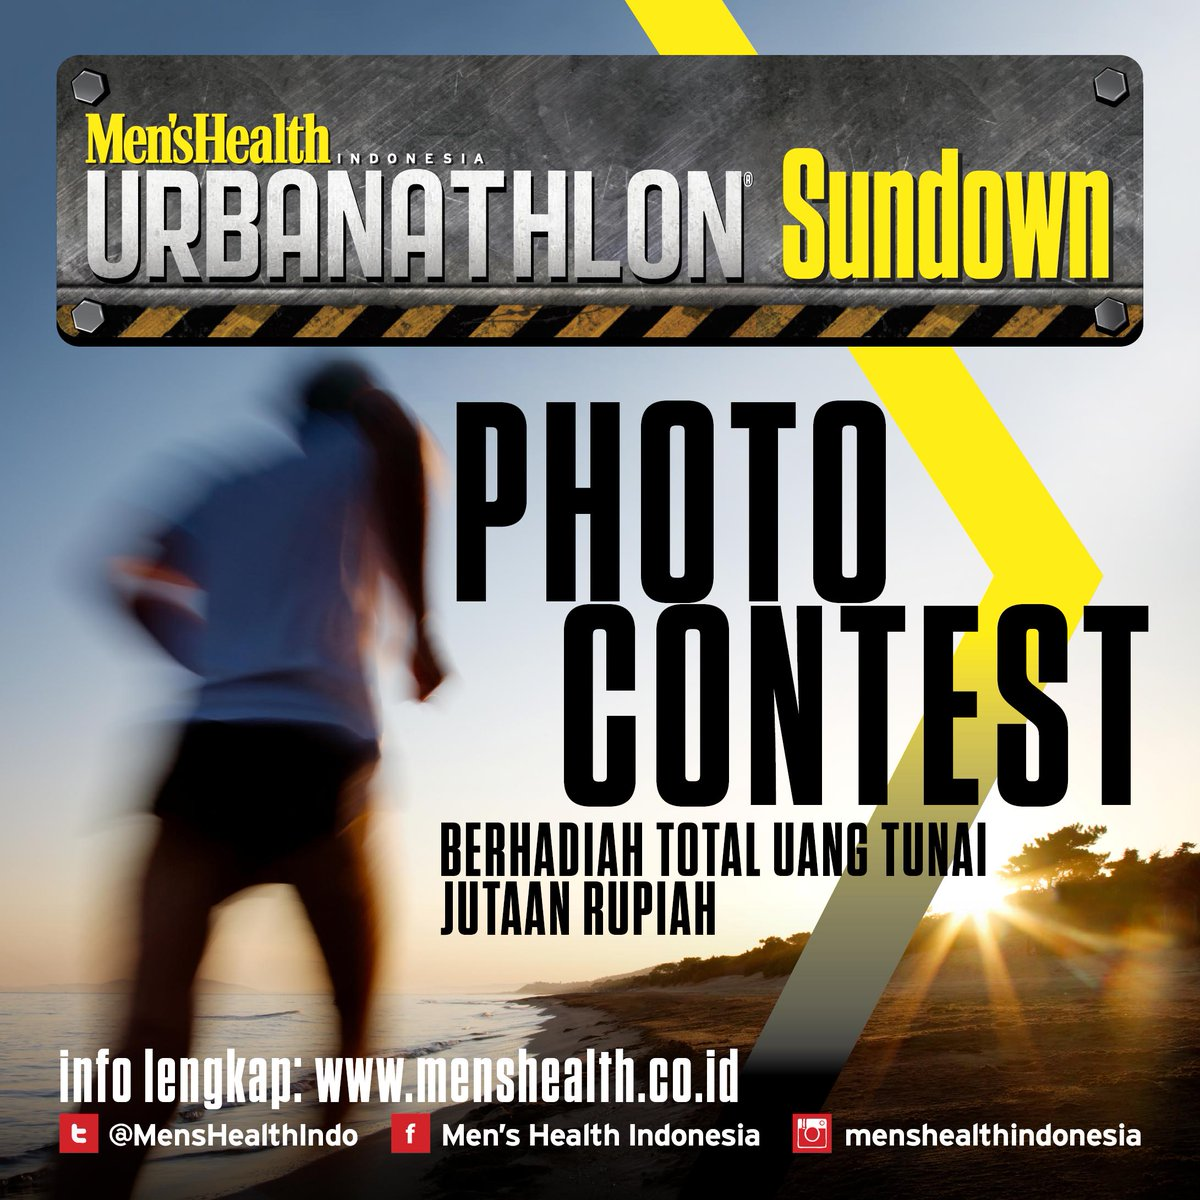 Men's Health Urbanathlon 2015 photos